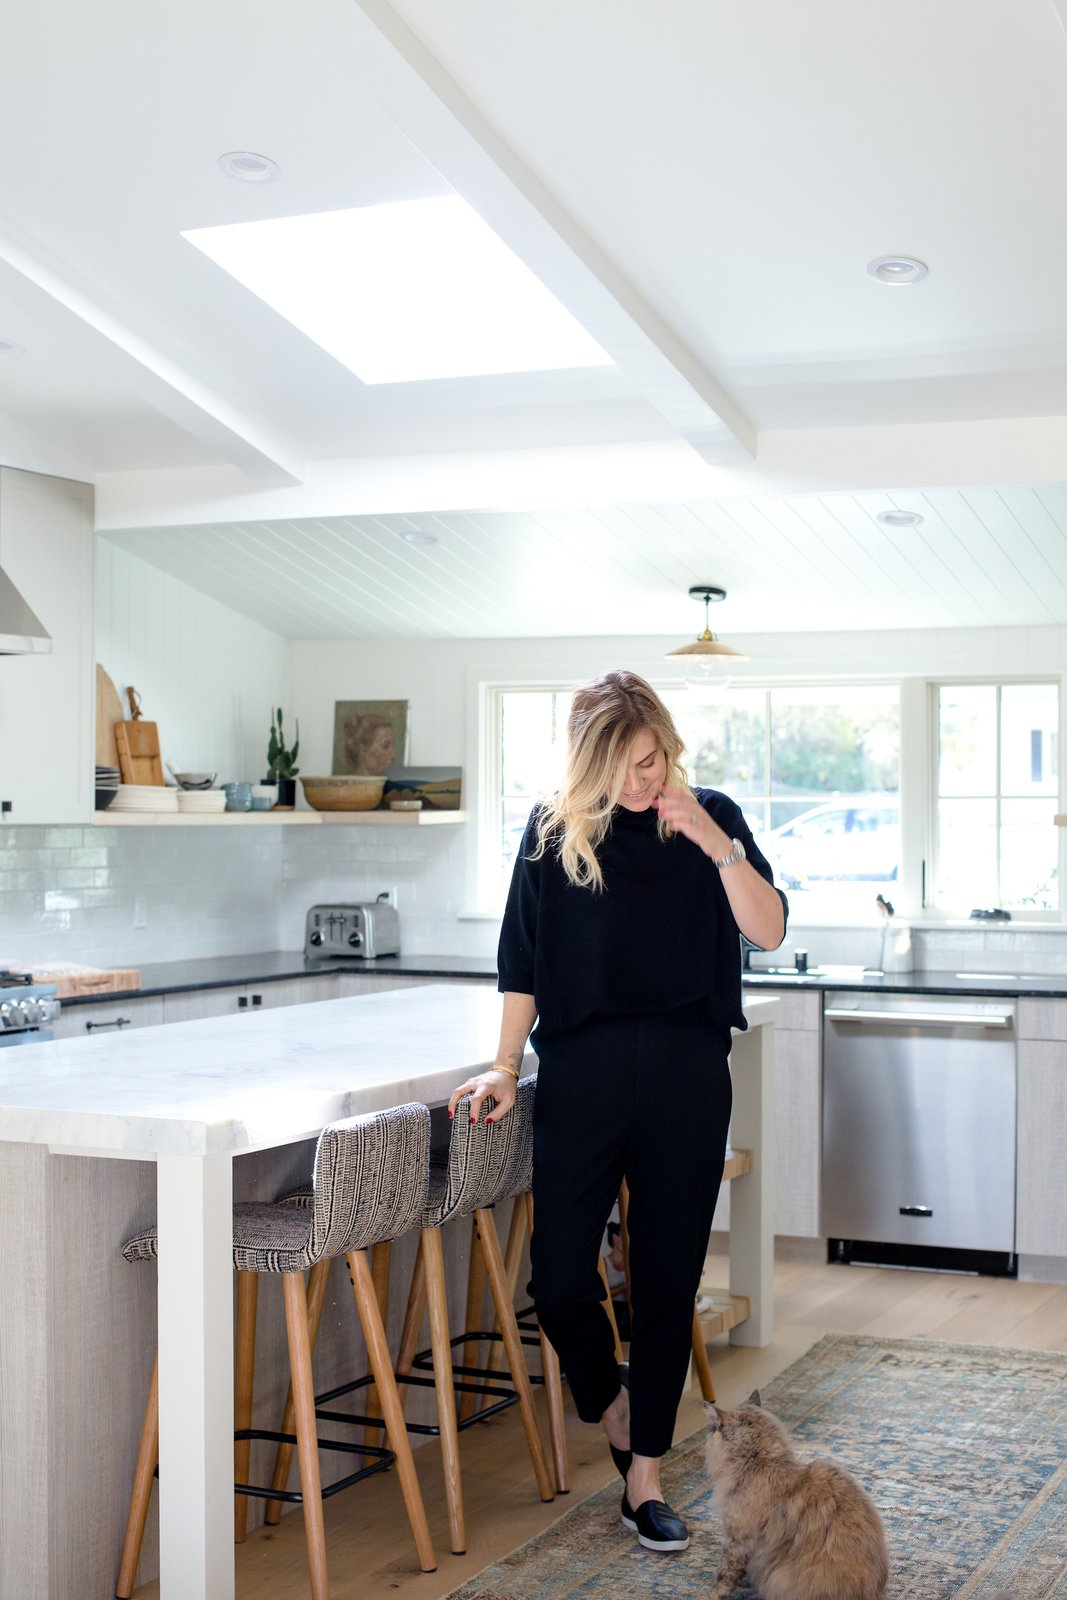 "Photo 9 of 9 in The Big Reveal: An Interior Designer Unveils Her ""No Ordinary Kitchen"" Makeover"